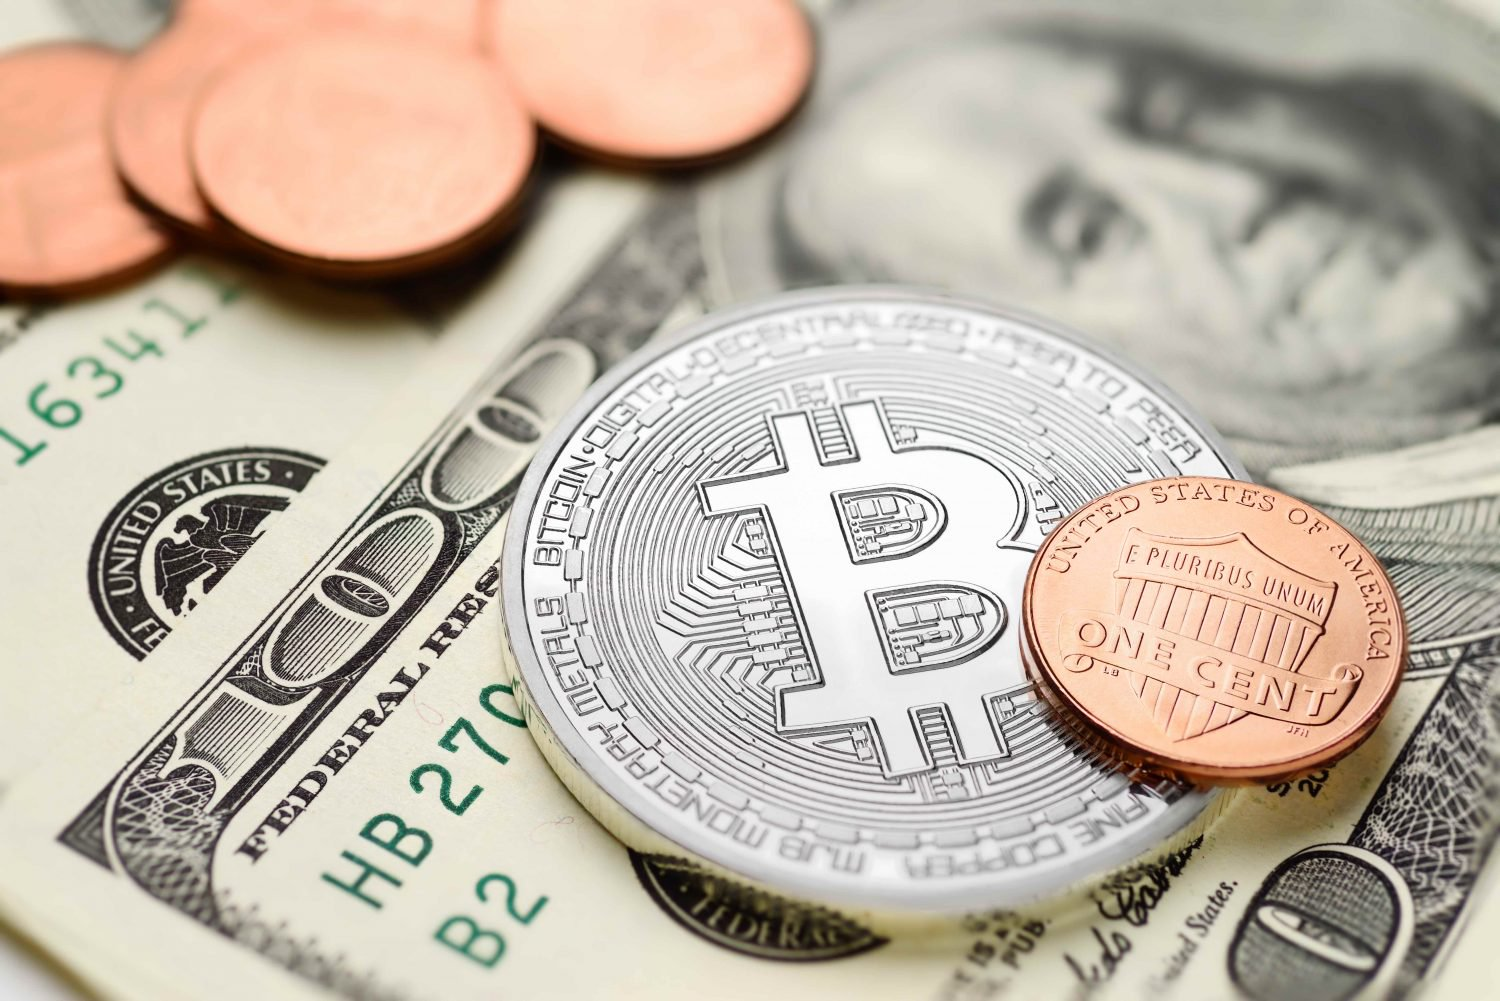 Arizona Lawmakers Want to Let People Pay Taxes in Bitcoin